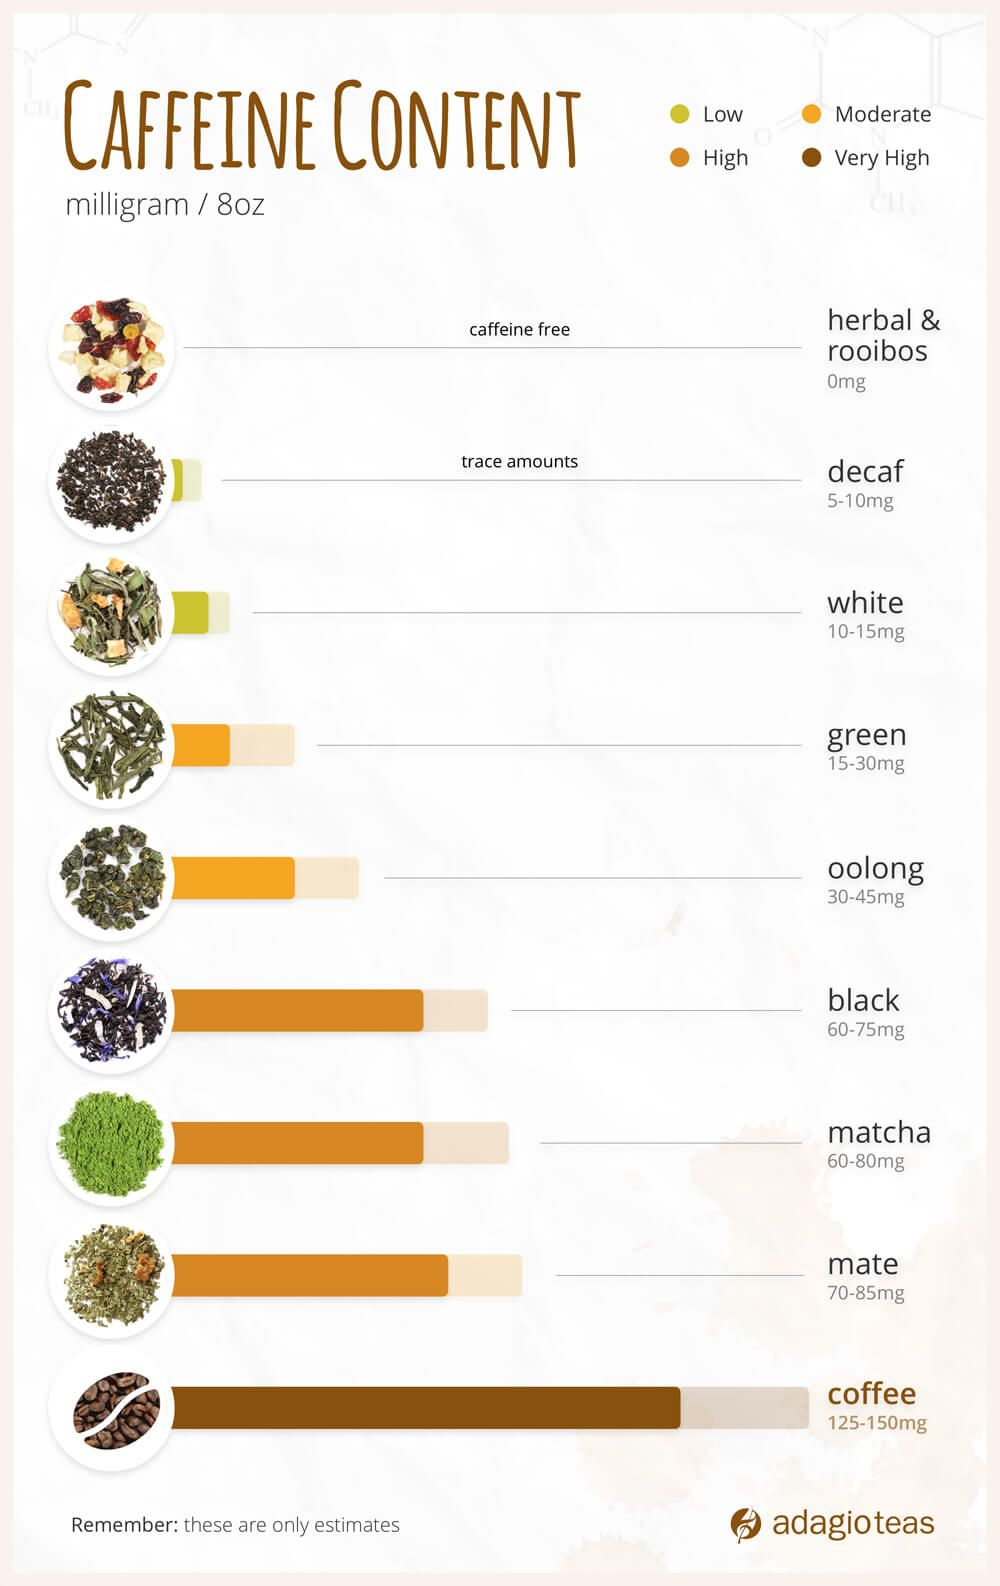 Tea Caffeine Content Chart Not Pictured Is Pu Erh Which Has About 60 70 Milligrams Of Caffeine Per 8 Oz In Caffeine Free Tea Coffee Vs Tea Caffeine Content